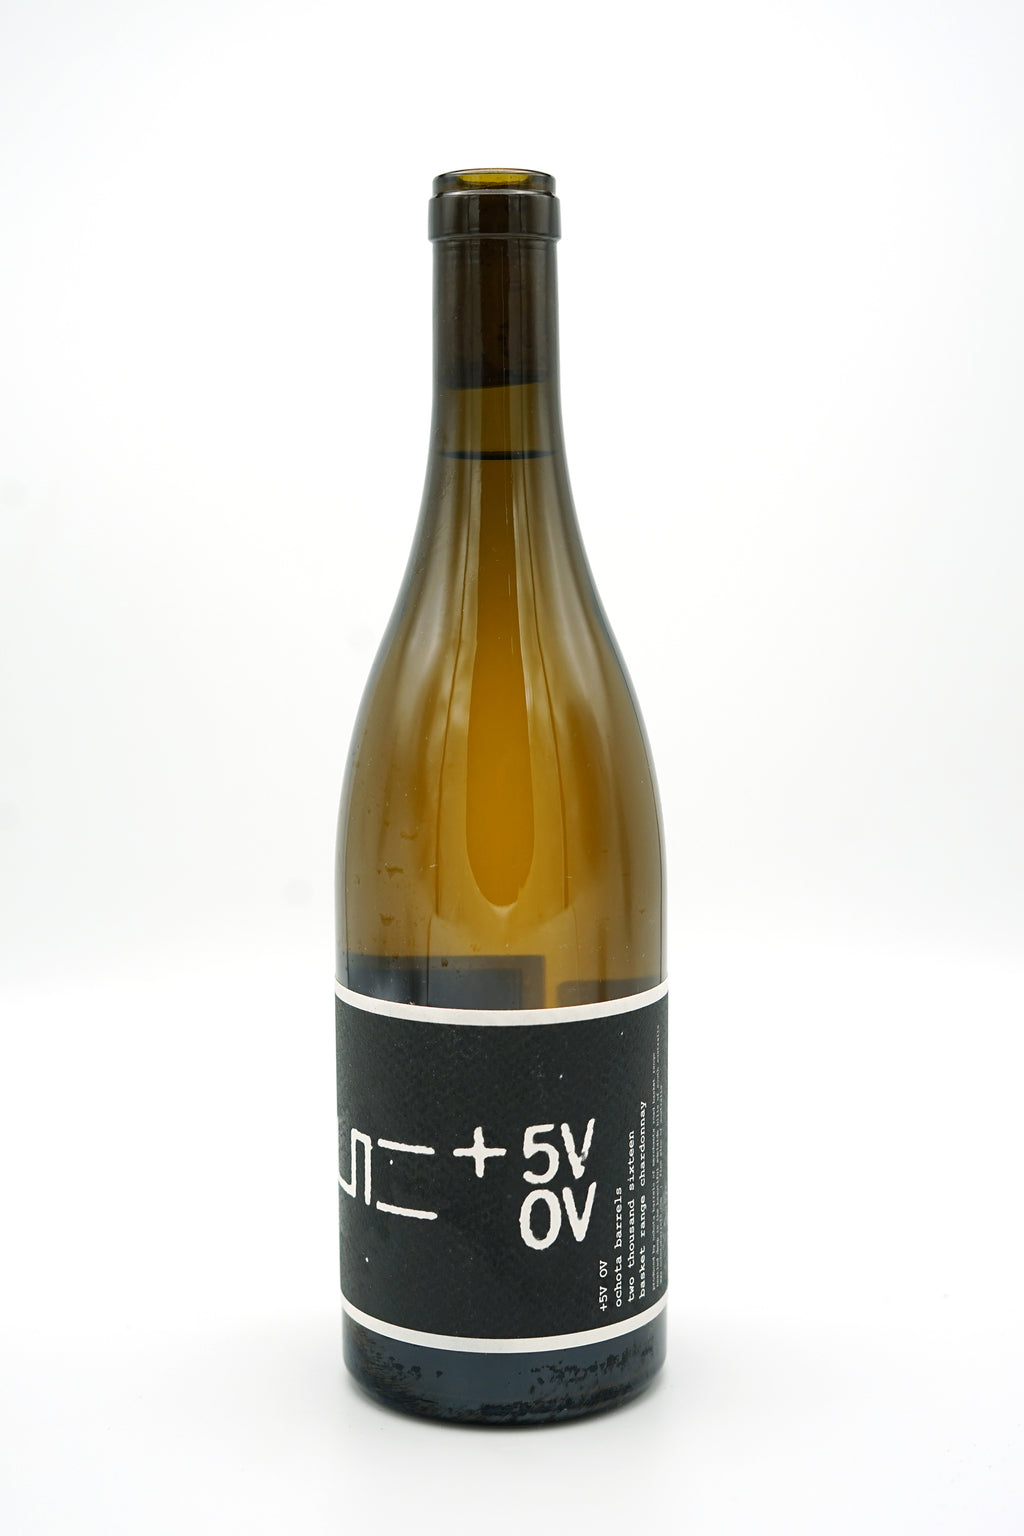 +5VOV Chardonnay 2016 - Ochota Barrels Winery - SOLD OUT